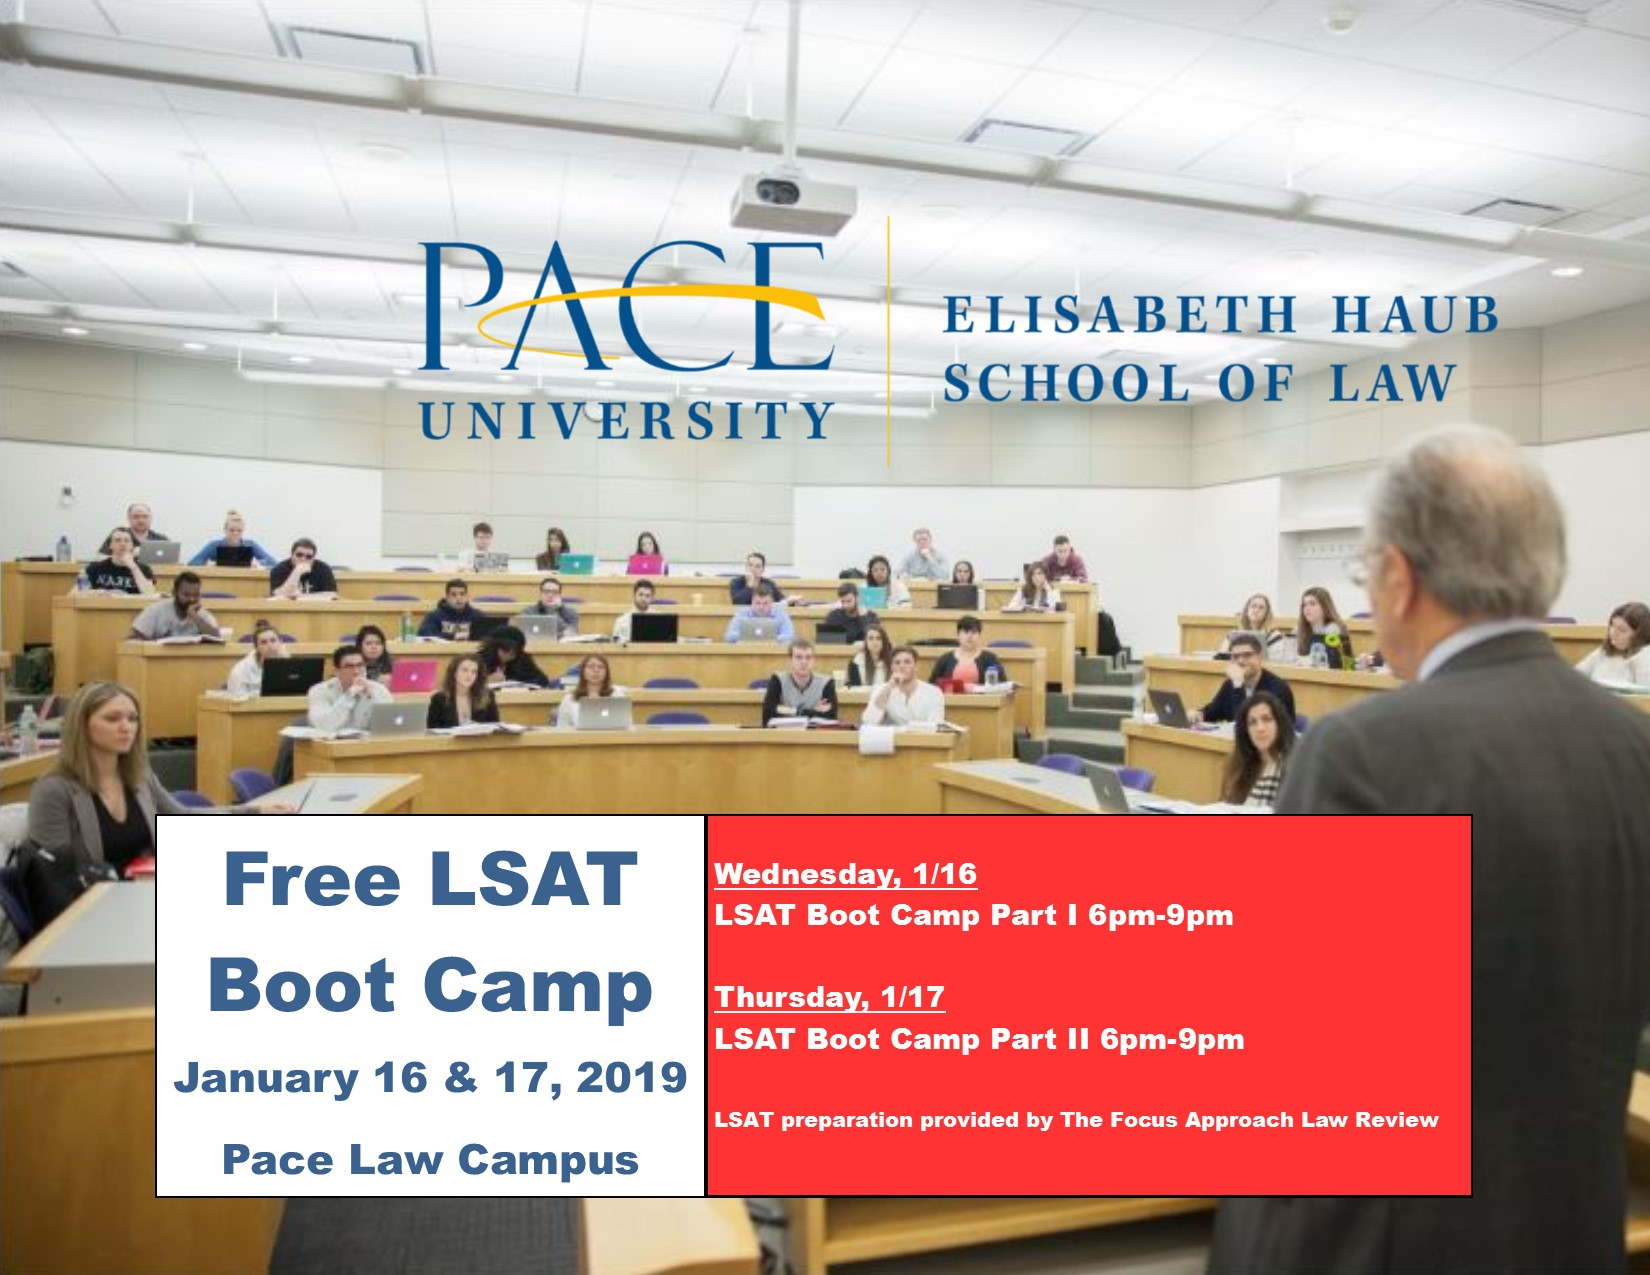 LSAT Boot Camp